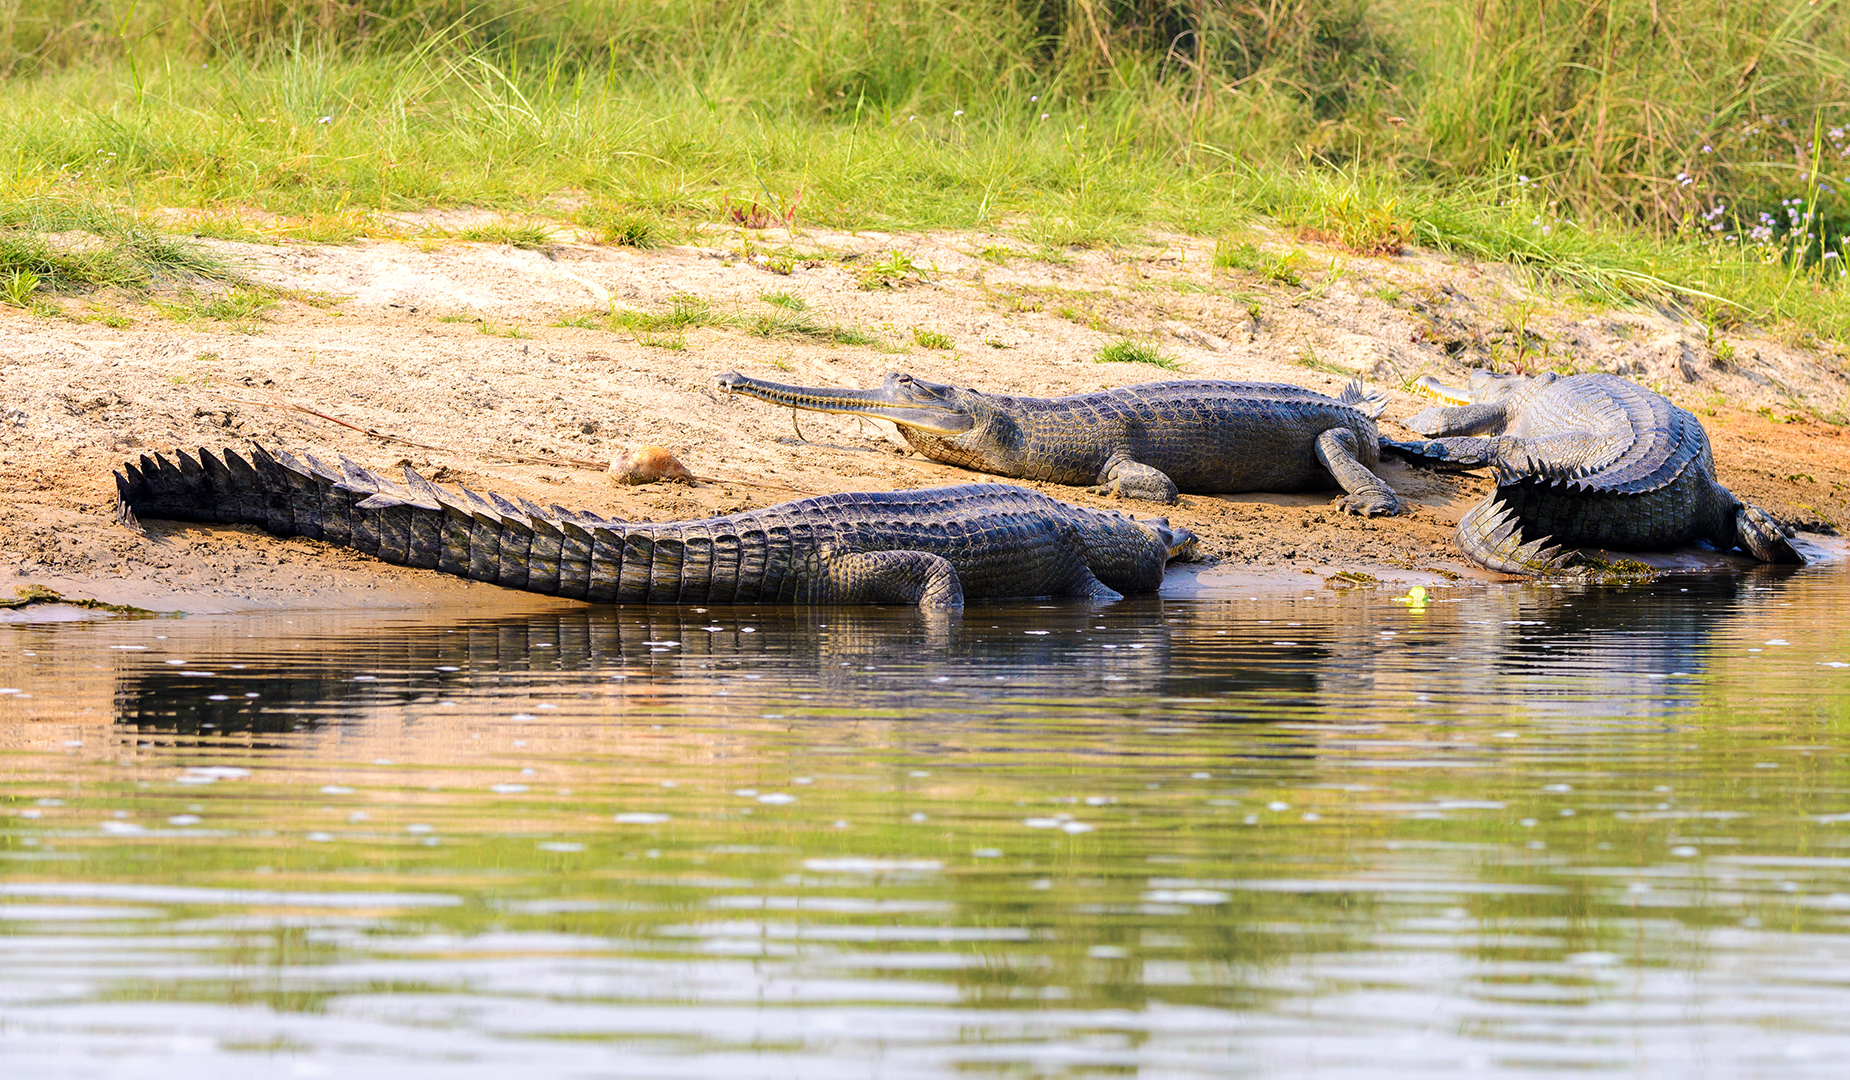 Gharials and Crocodiles